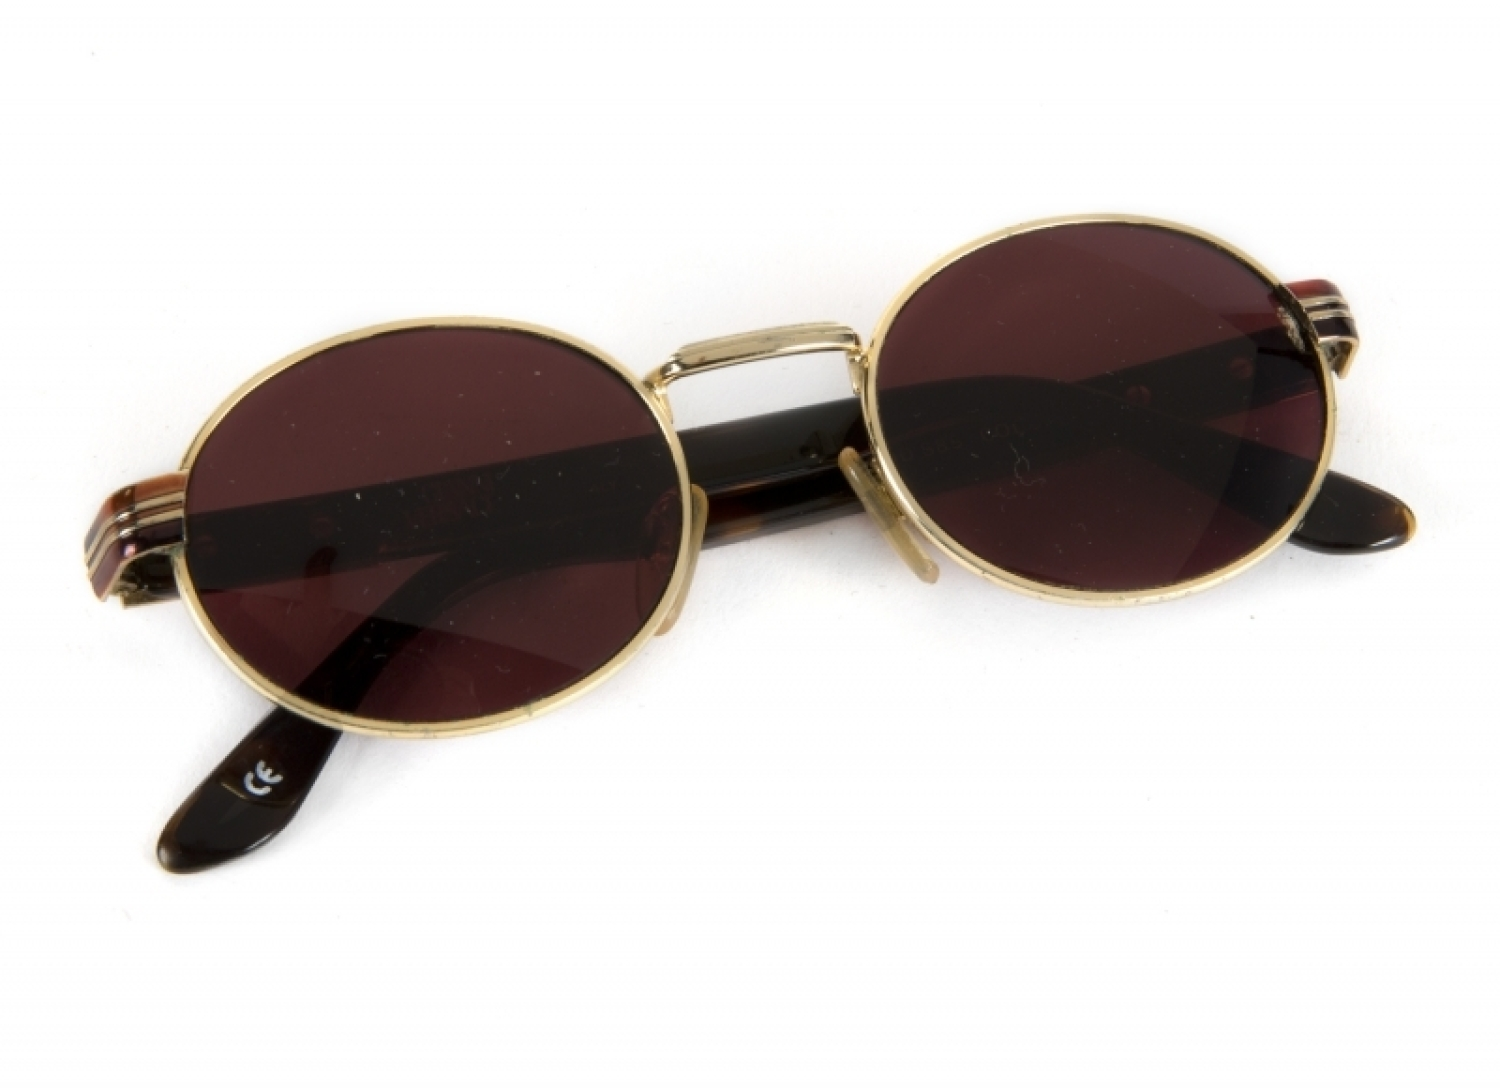 PRINCE OVAL VERSACE SUNGLASSES •o - Current price: $2500